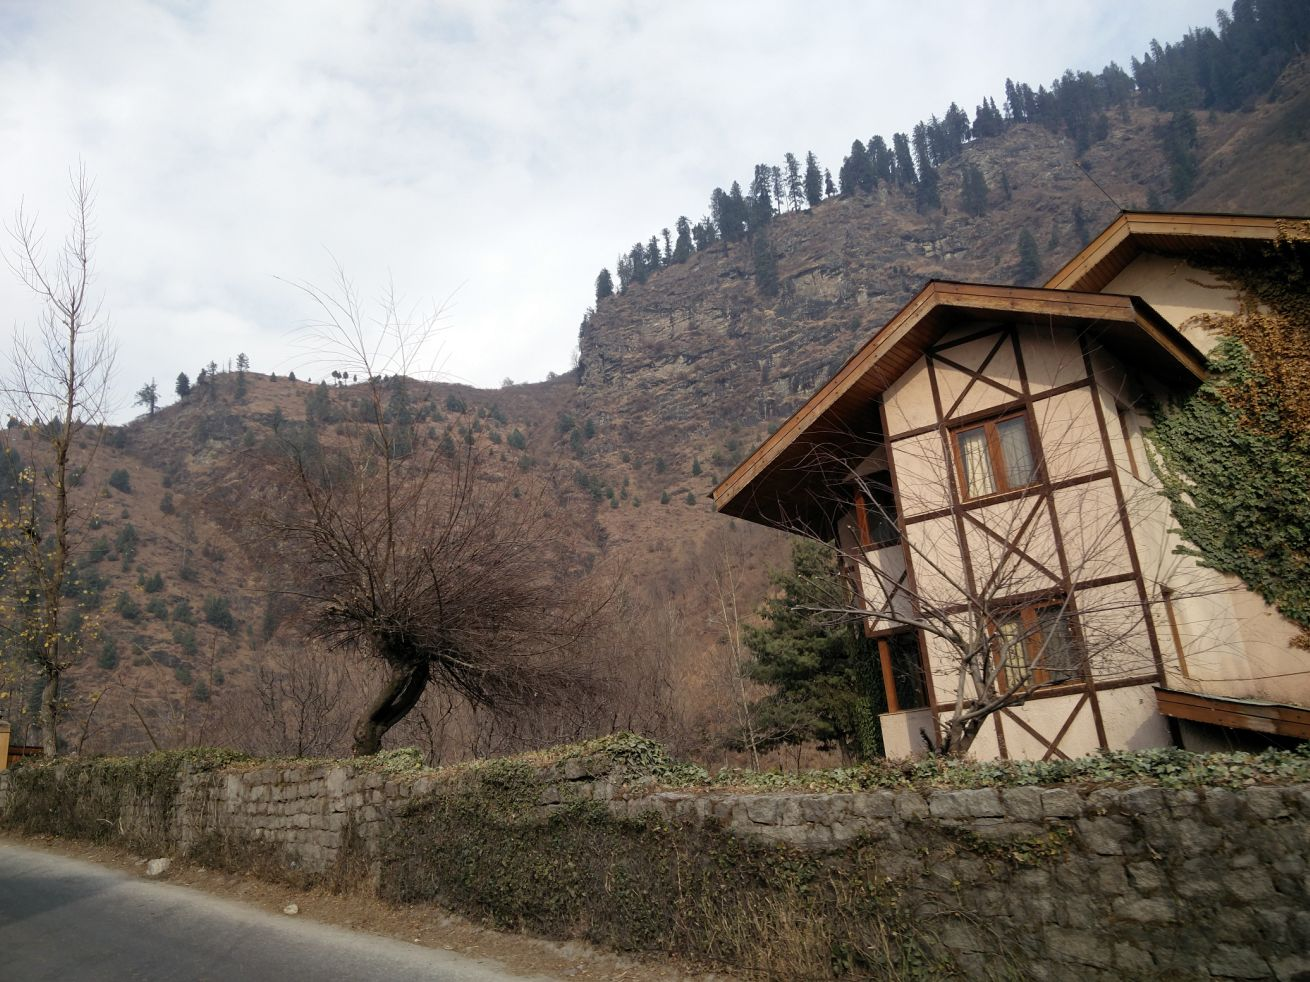 Houses in Manali